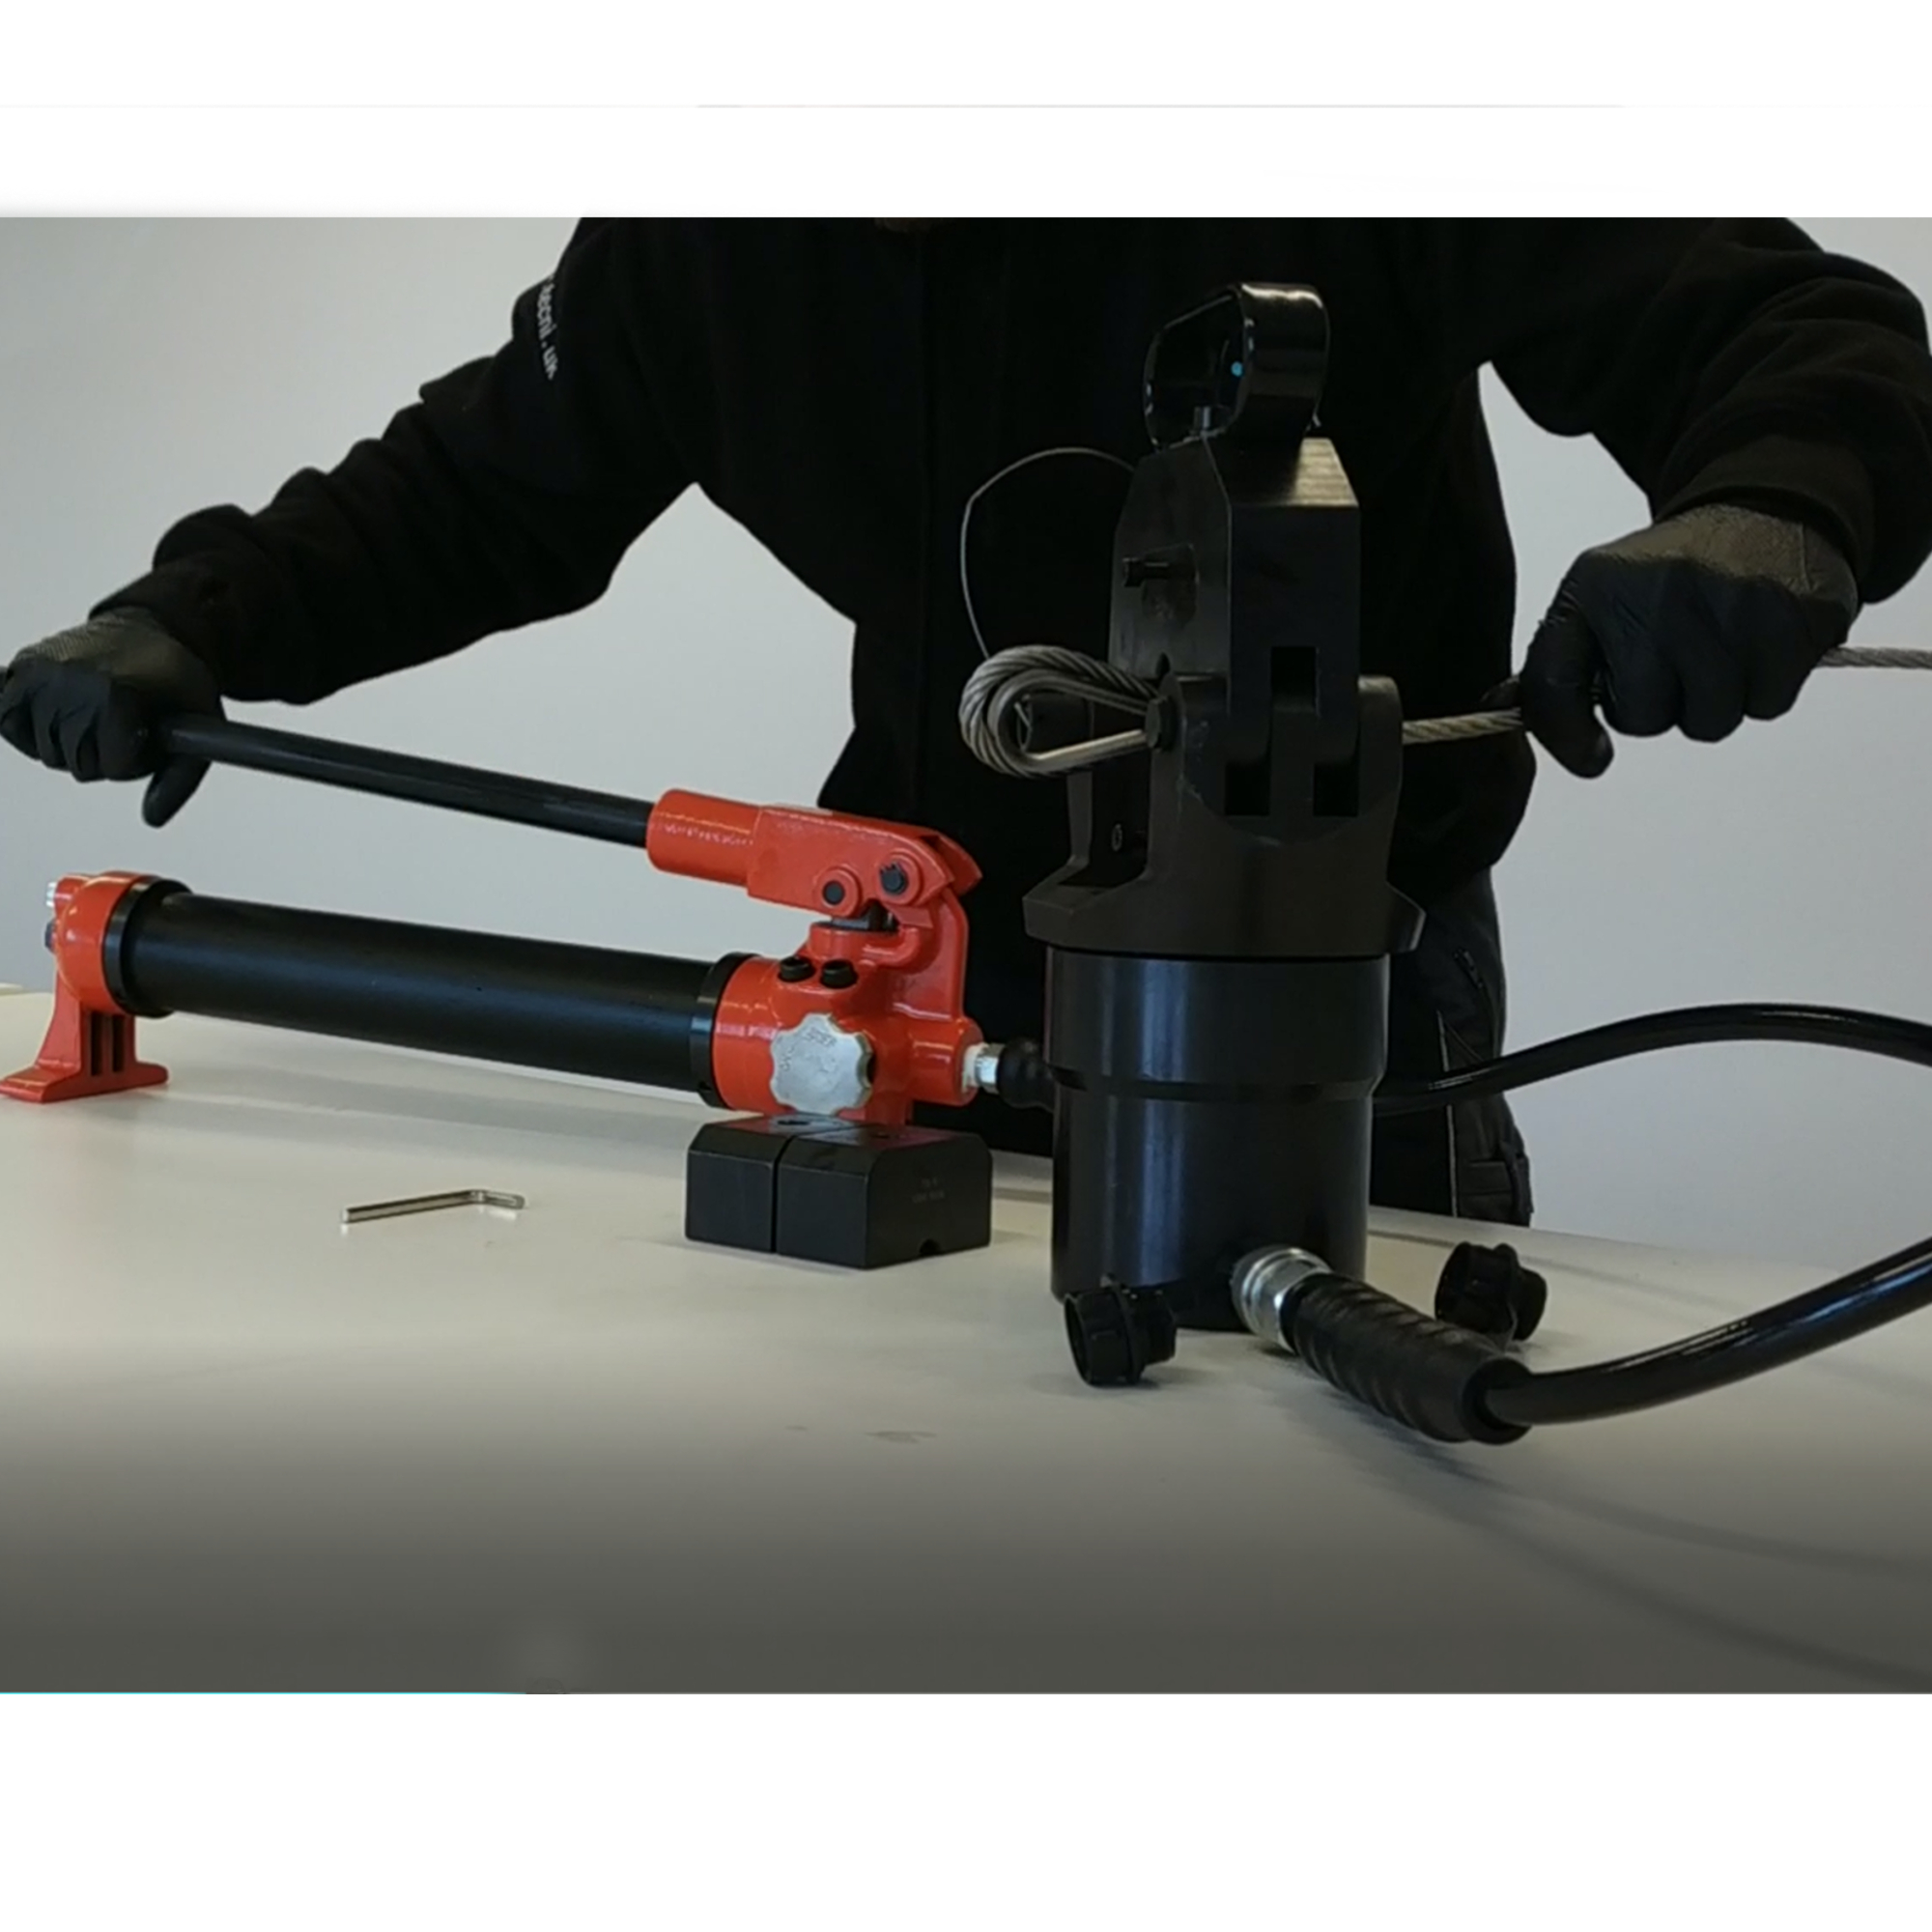 Tecni Ycf 630 Hydraulic Cable Crimper 5mm 11mm With